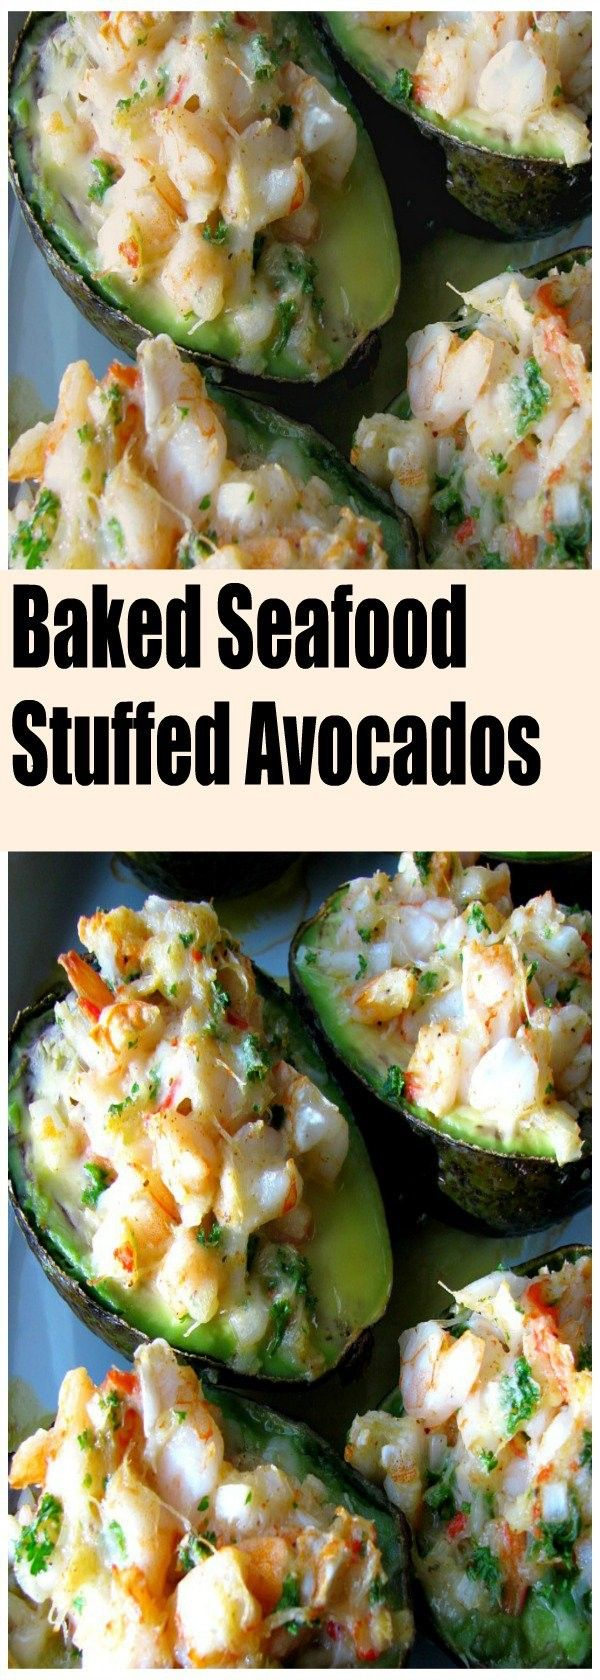 Get the recipe Baked Seafood Stuffed Avocados @recipes_to_go